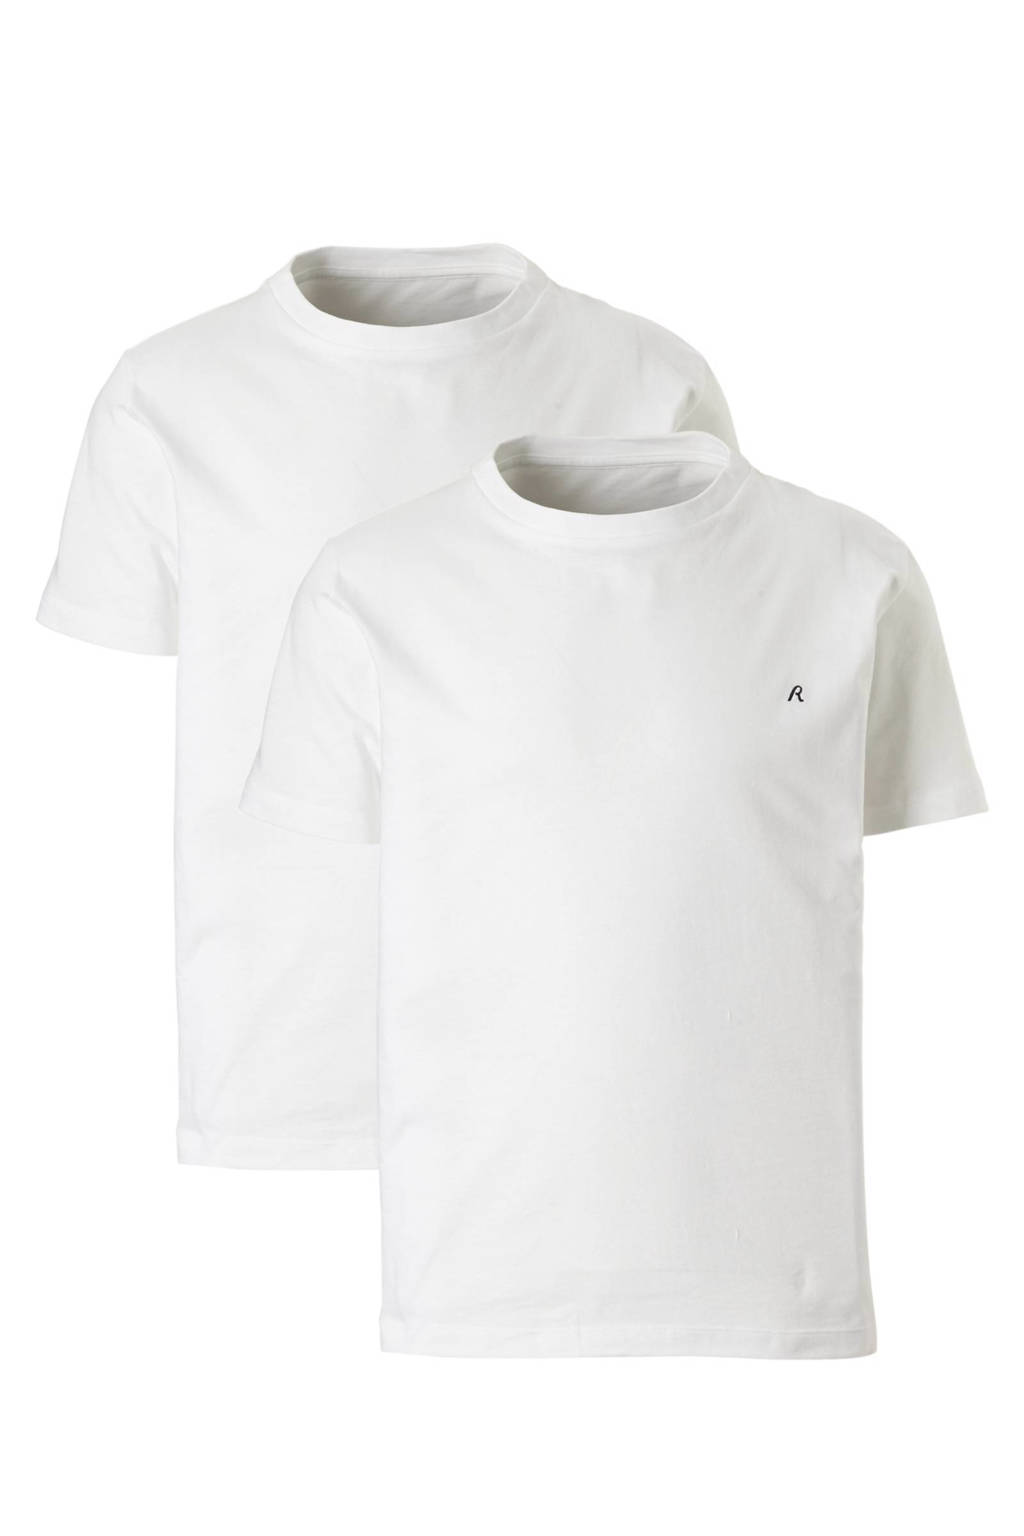 REPLAY T-shirt 2-pack, Wit